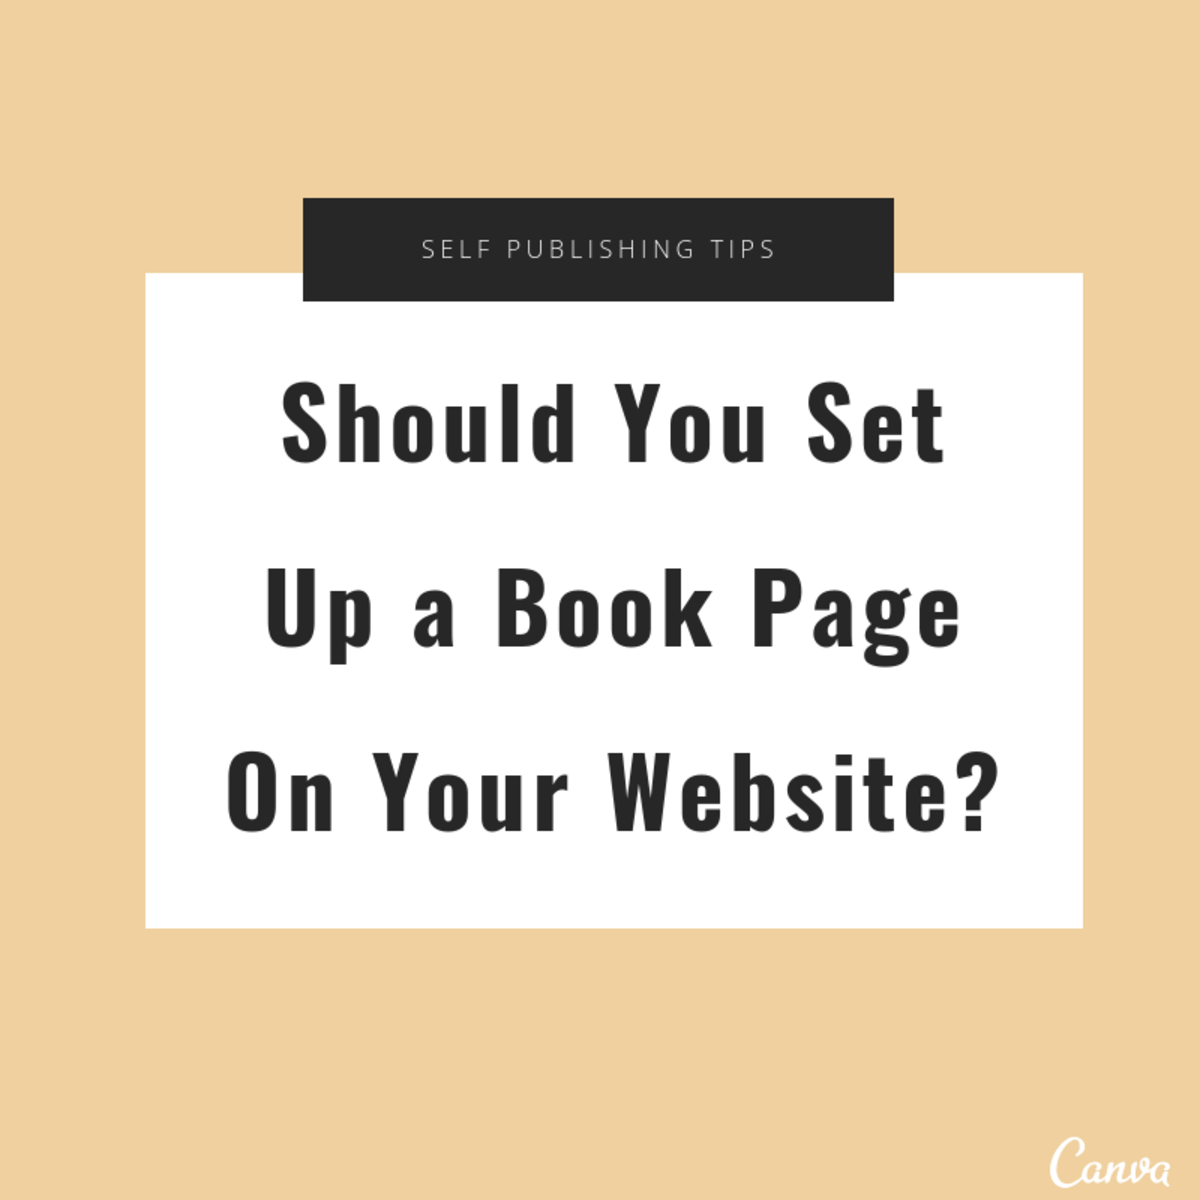 Should You Set up a Book Page on Your Website?